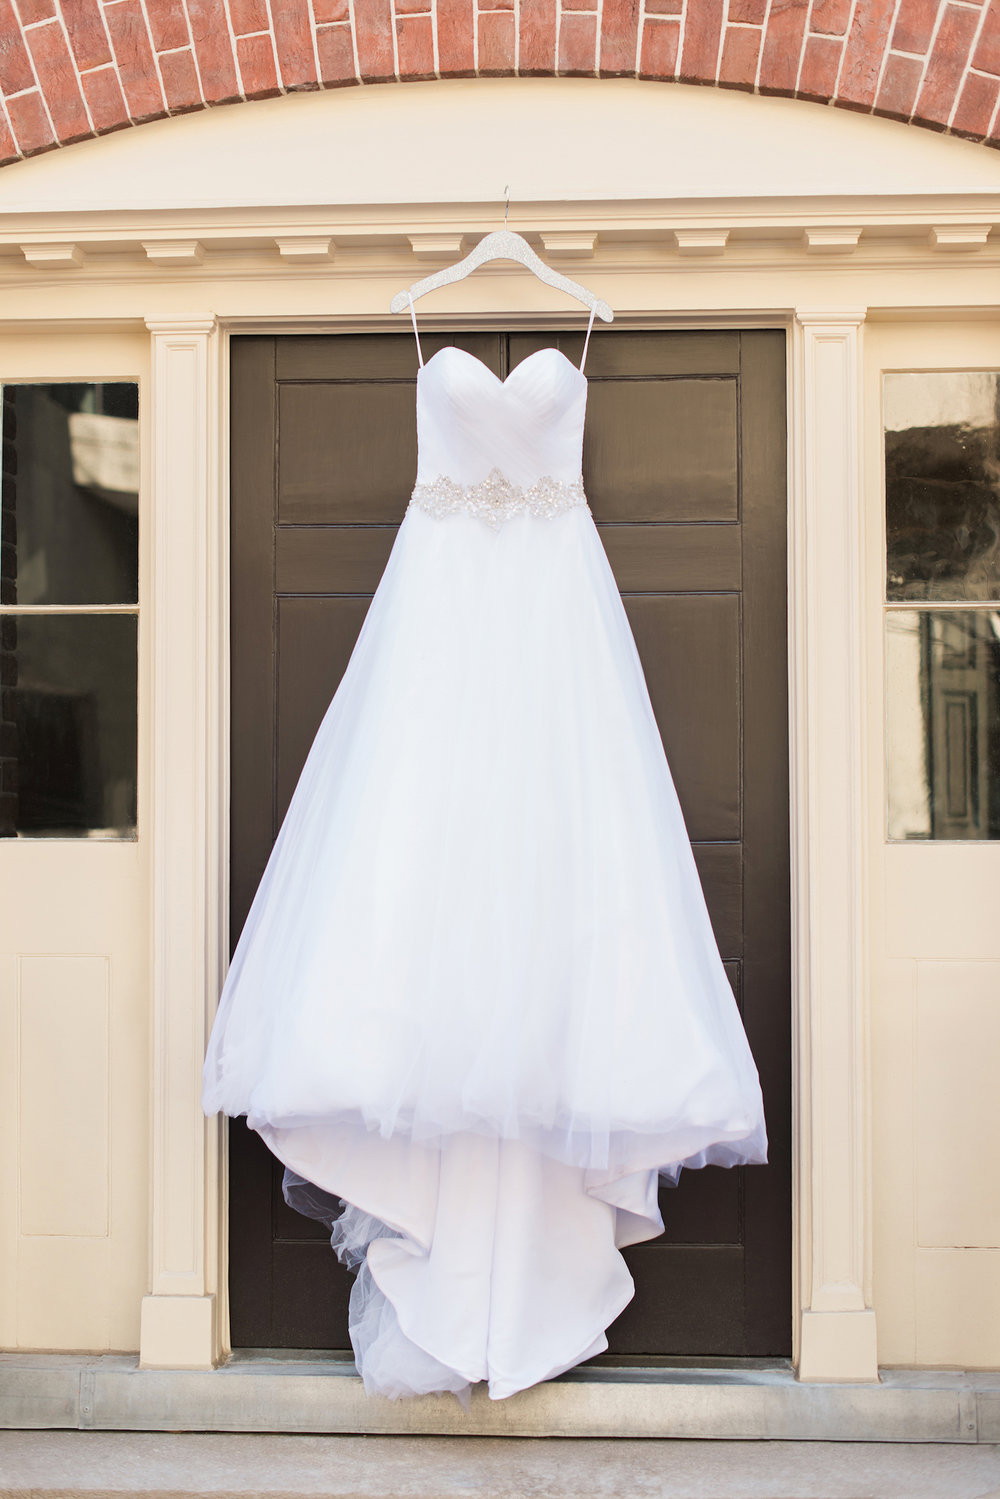 Pretty White Wedding Dress — Luxurious and romantic vintage wedding inspiration in an urban venue — photo by Marianne Blackham Photography — as seen on www.BrendasWeddingBlog.com